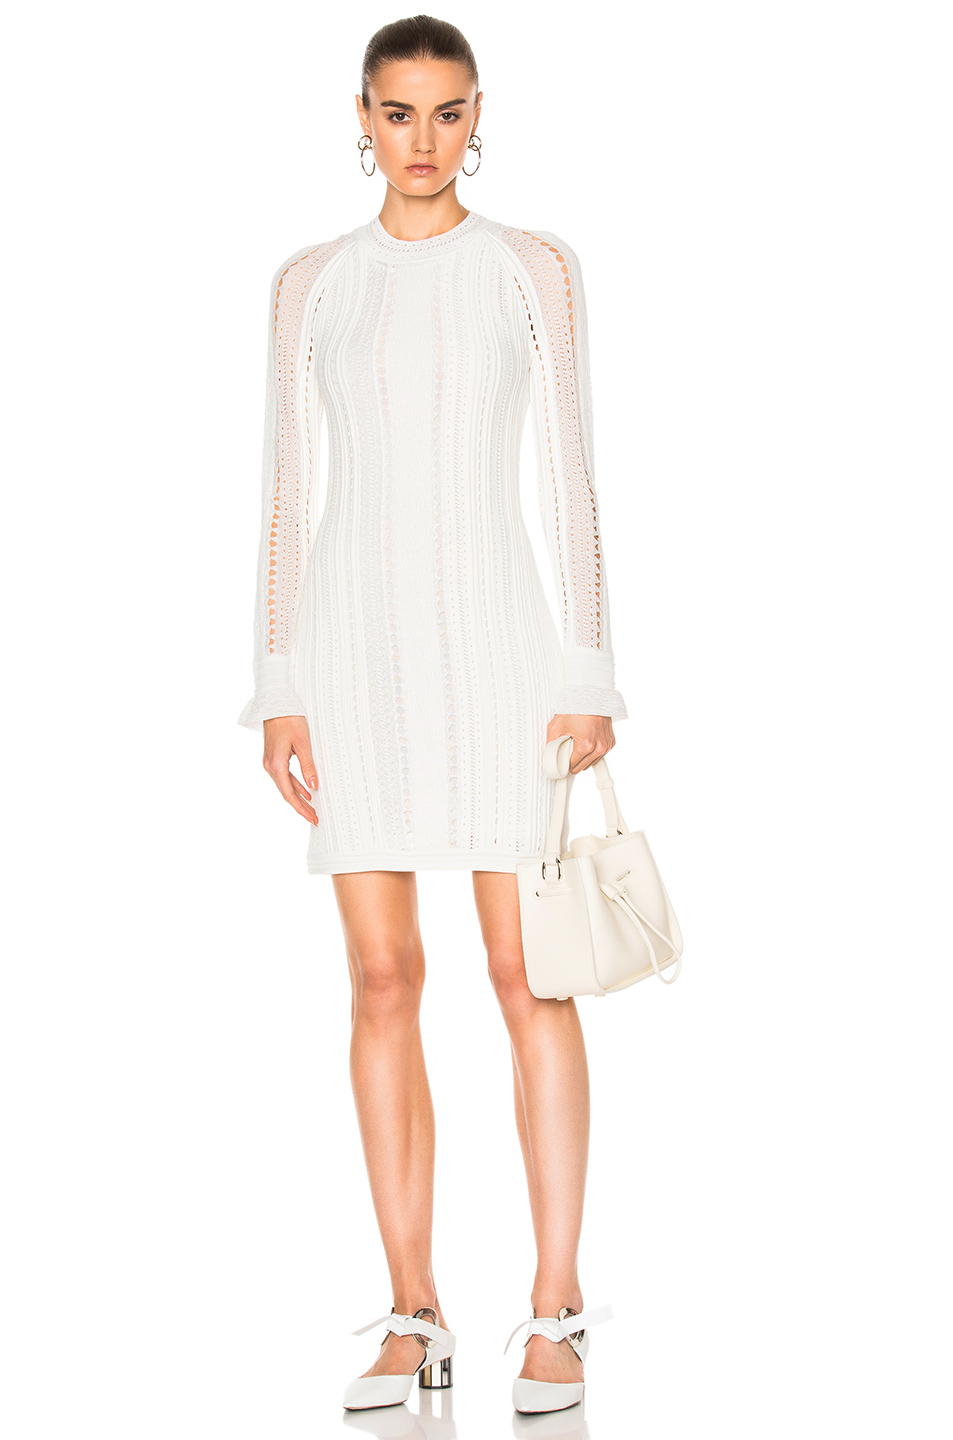 3.1 phillip lim Long Sleeve Pointelle Lace Dress in White